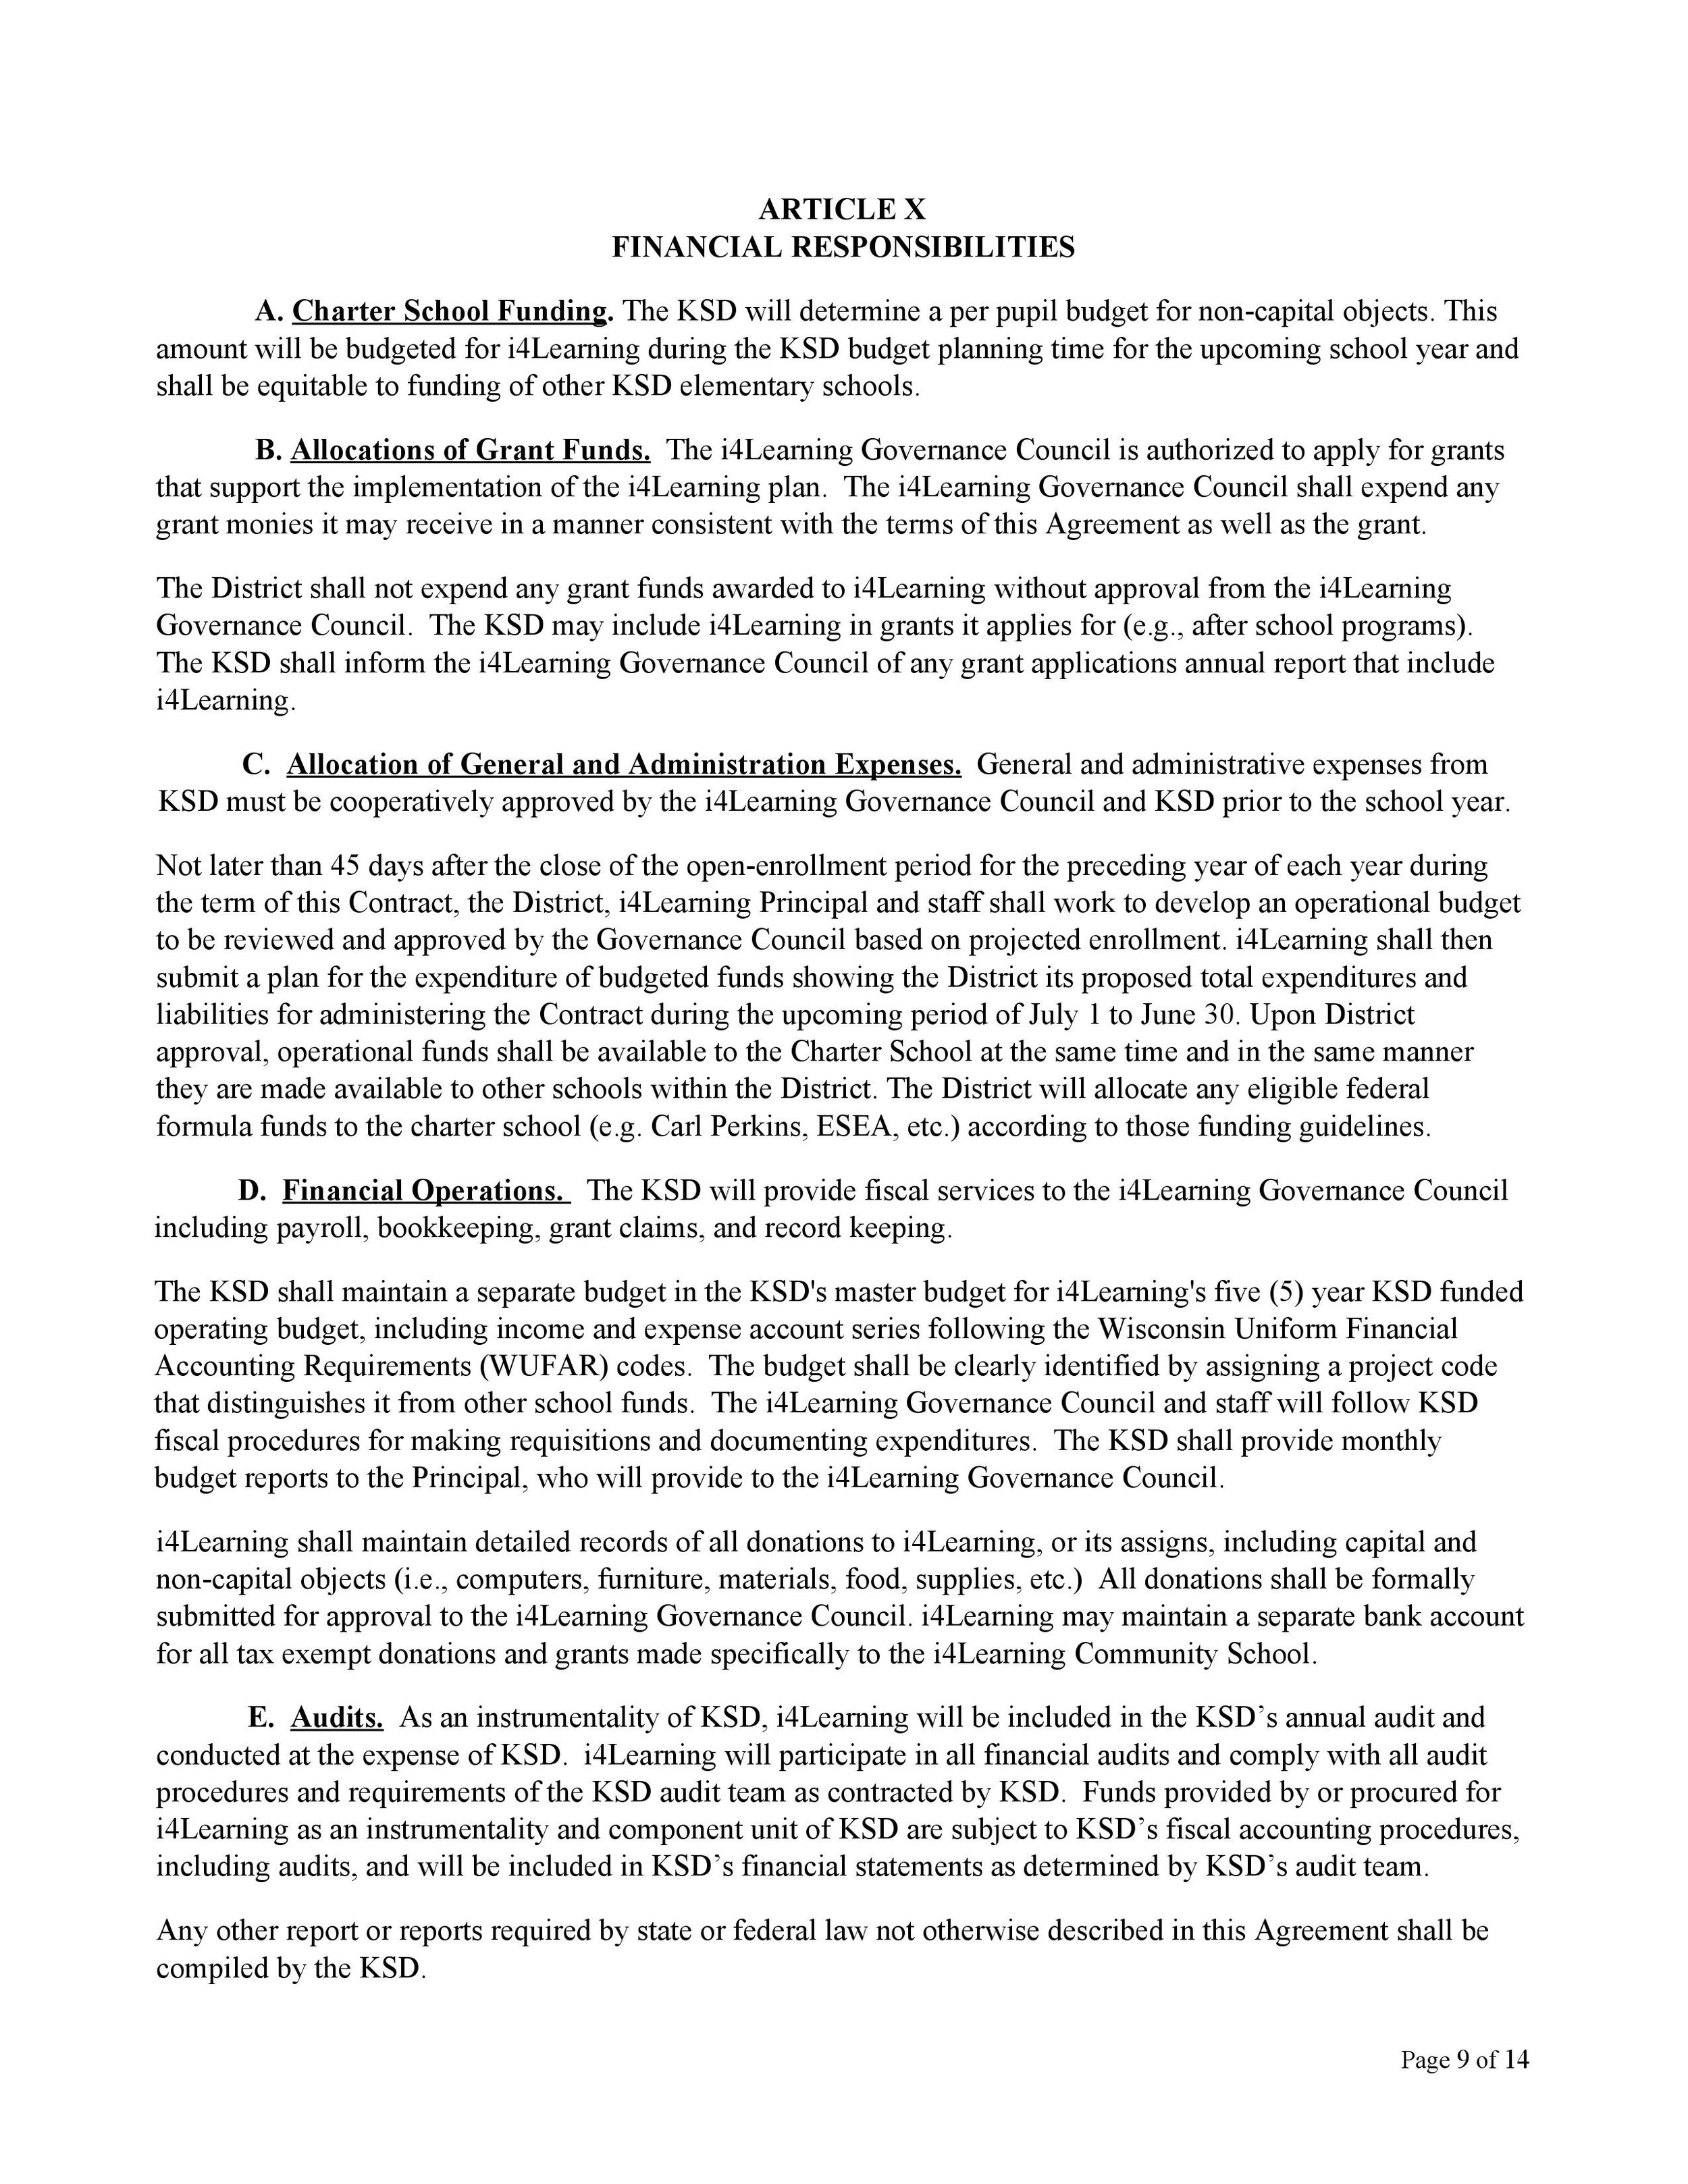 Contract — i4Learning